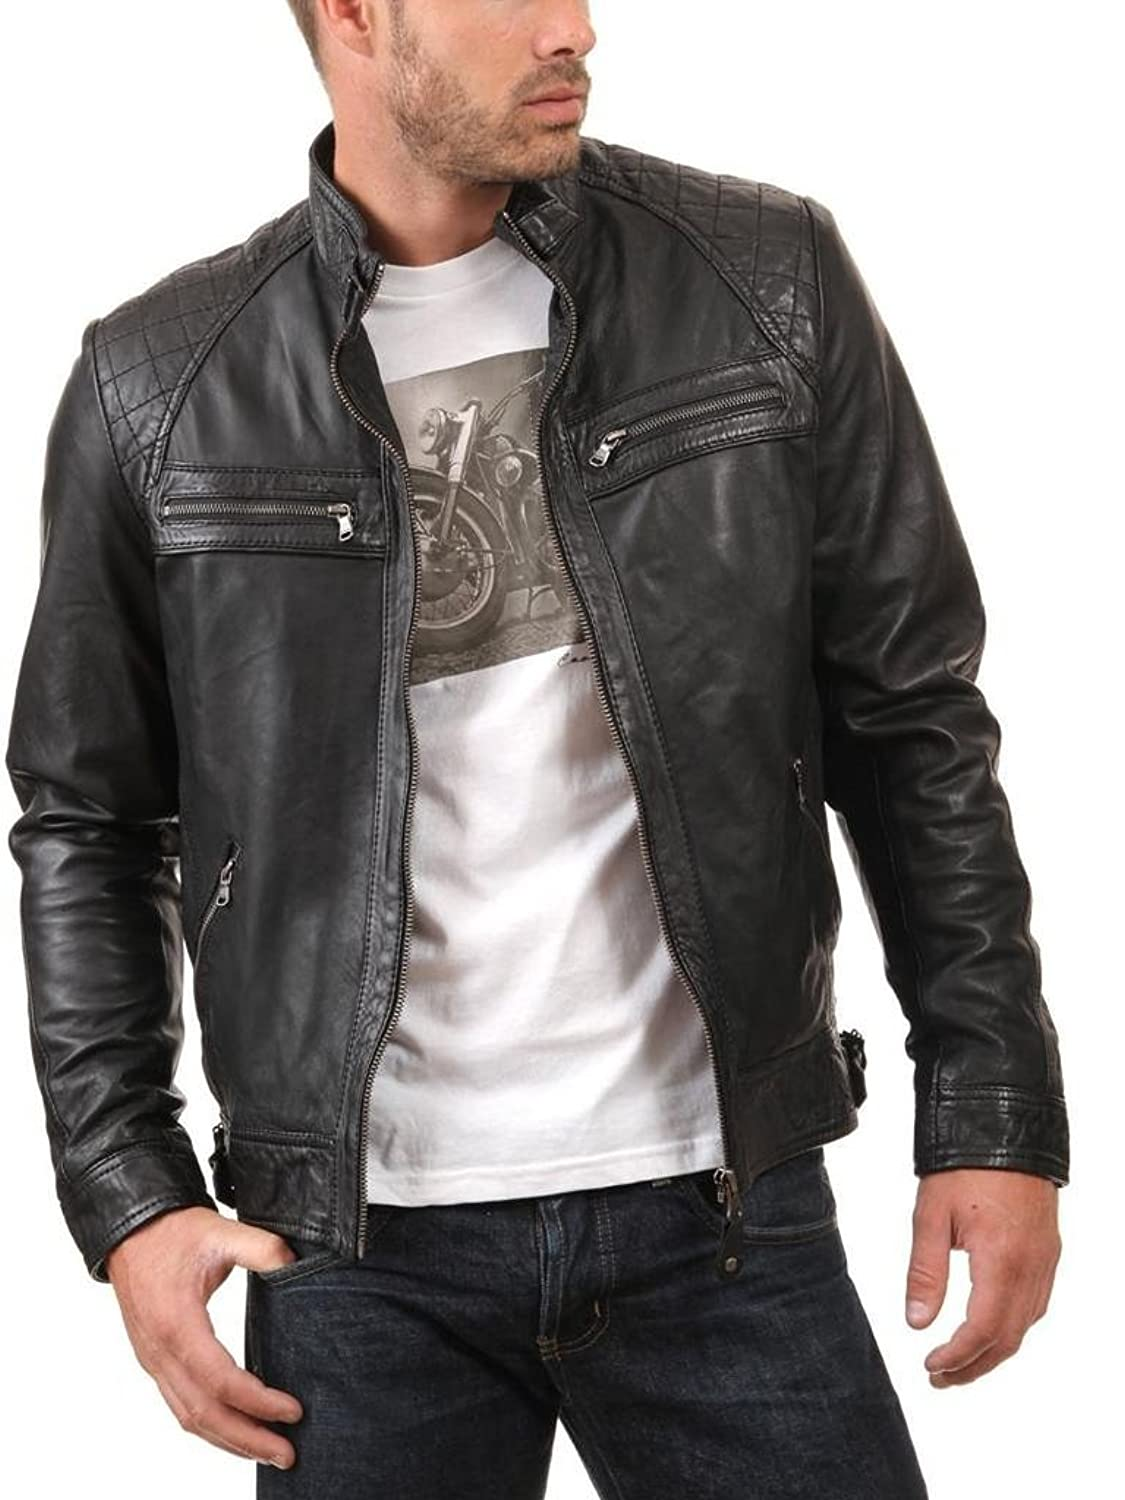 Real leather jackets for men